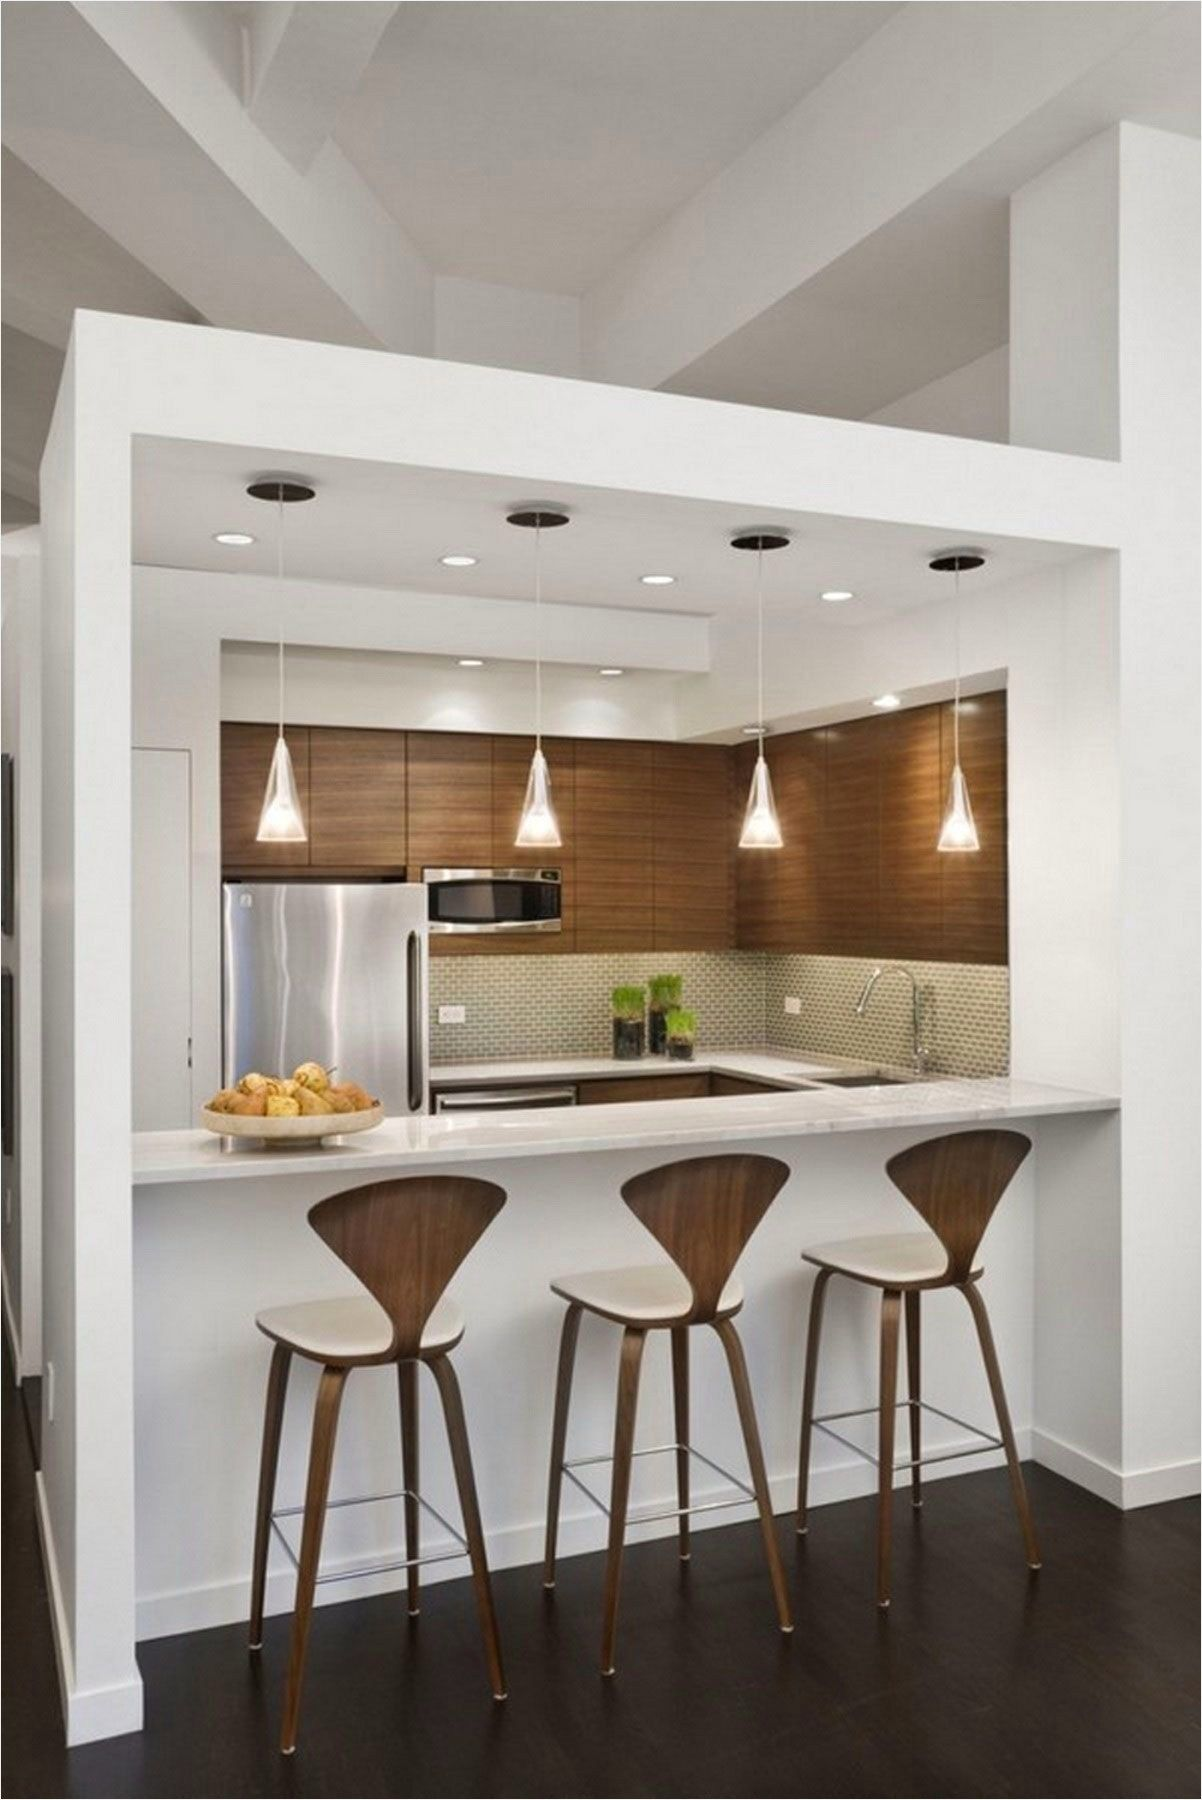 Modern Kitchen Design Ideas For Small Spaces Decorequired Kitchen Bar Design Kitchen Remodel Small Kitchen Design Small